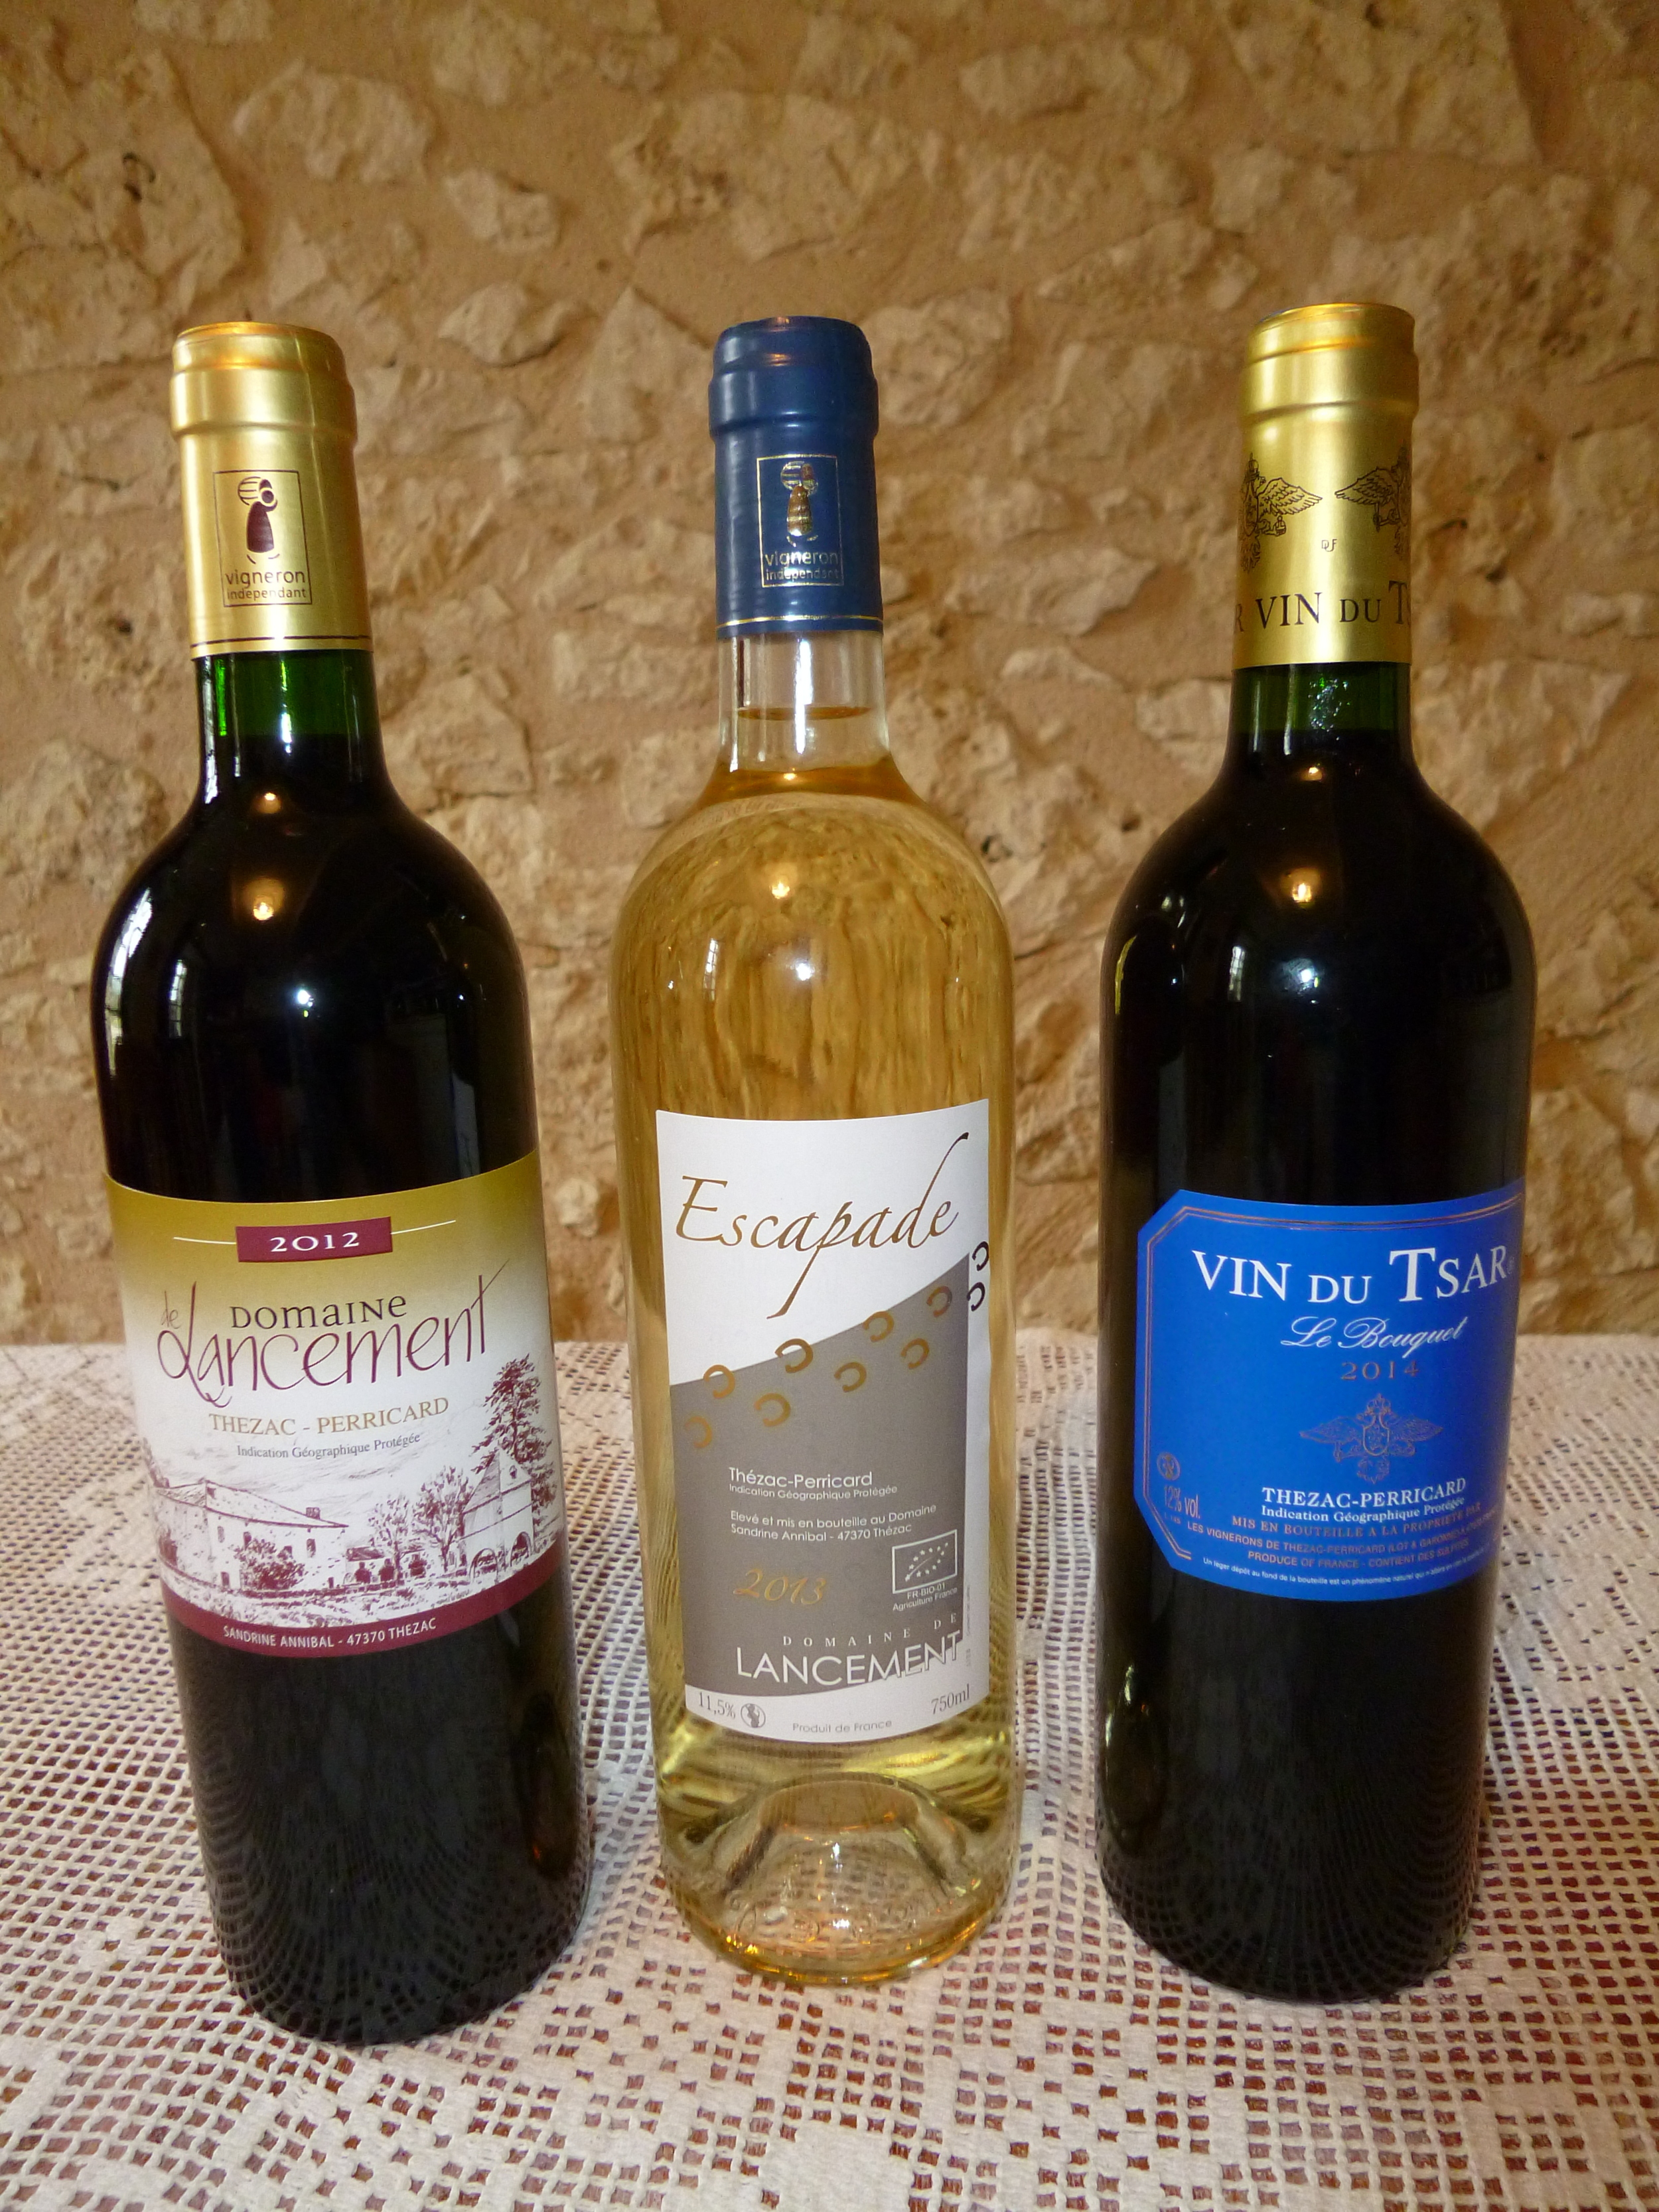 Some of the wines from Thezac. IGP Thezac Perricard Appellation.